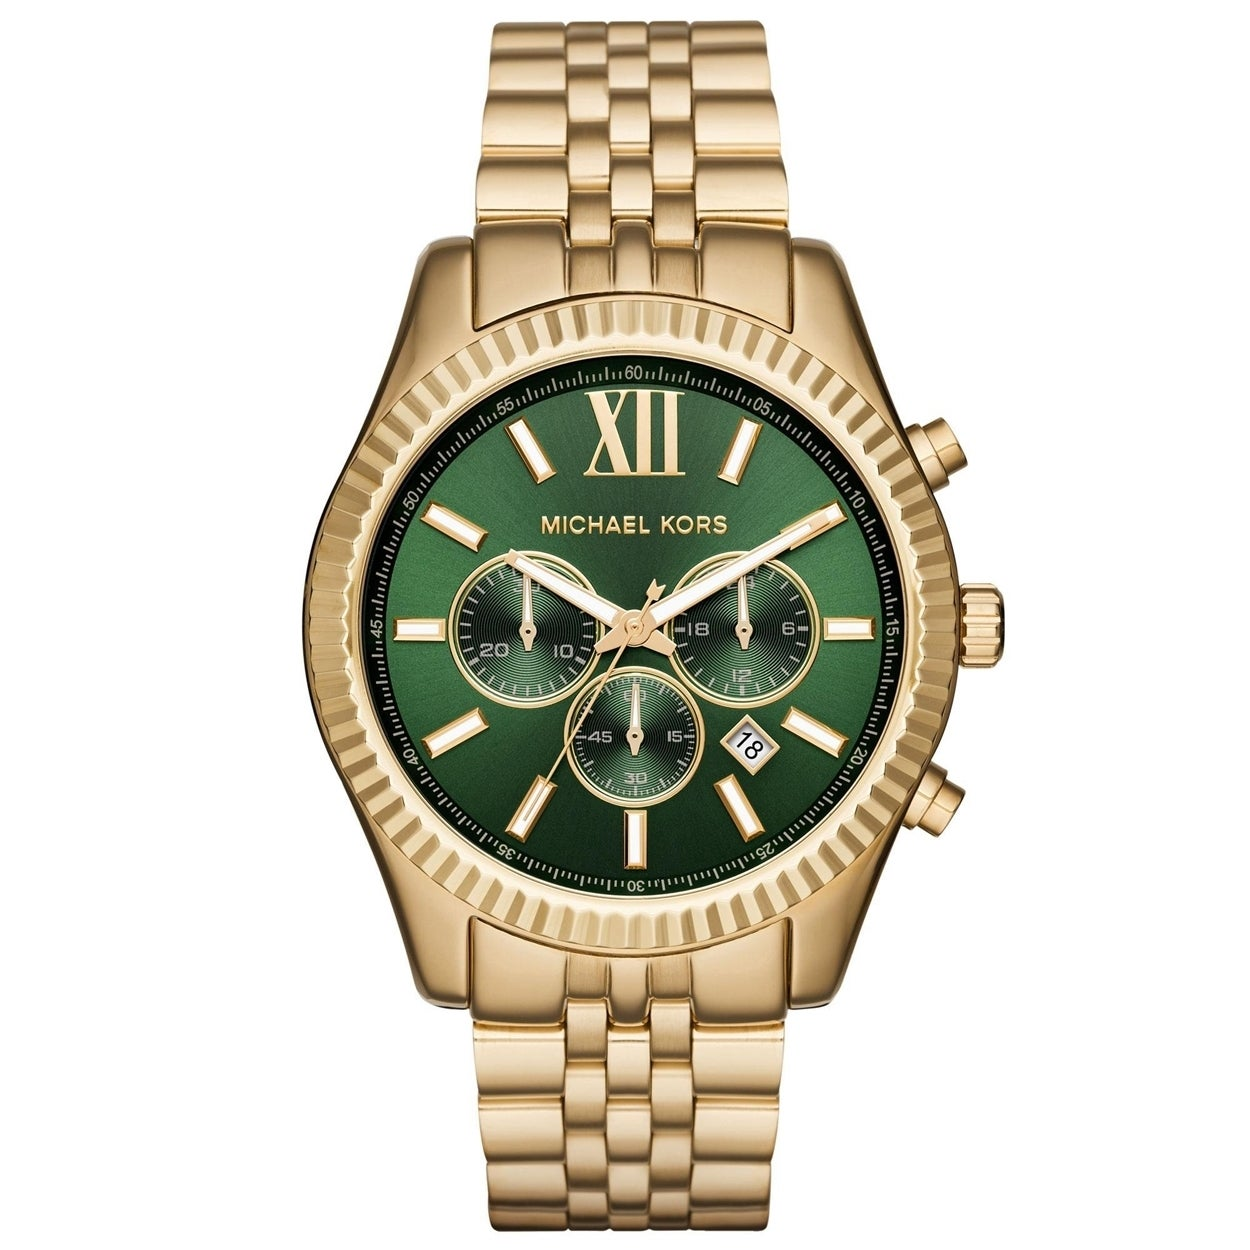 a0645ce2473c Shop Michael Kors Men s MK8446  Lexington  Chronograph Gold-Tone Stainless  Steel Watch - Free Shipping Today - Overstock - 10633157